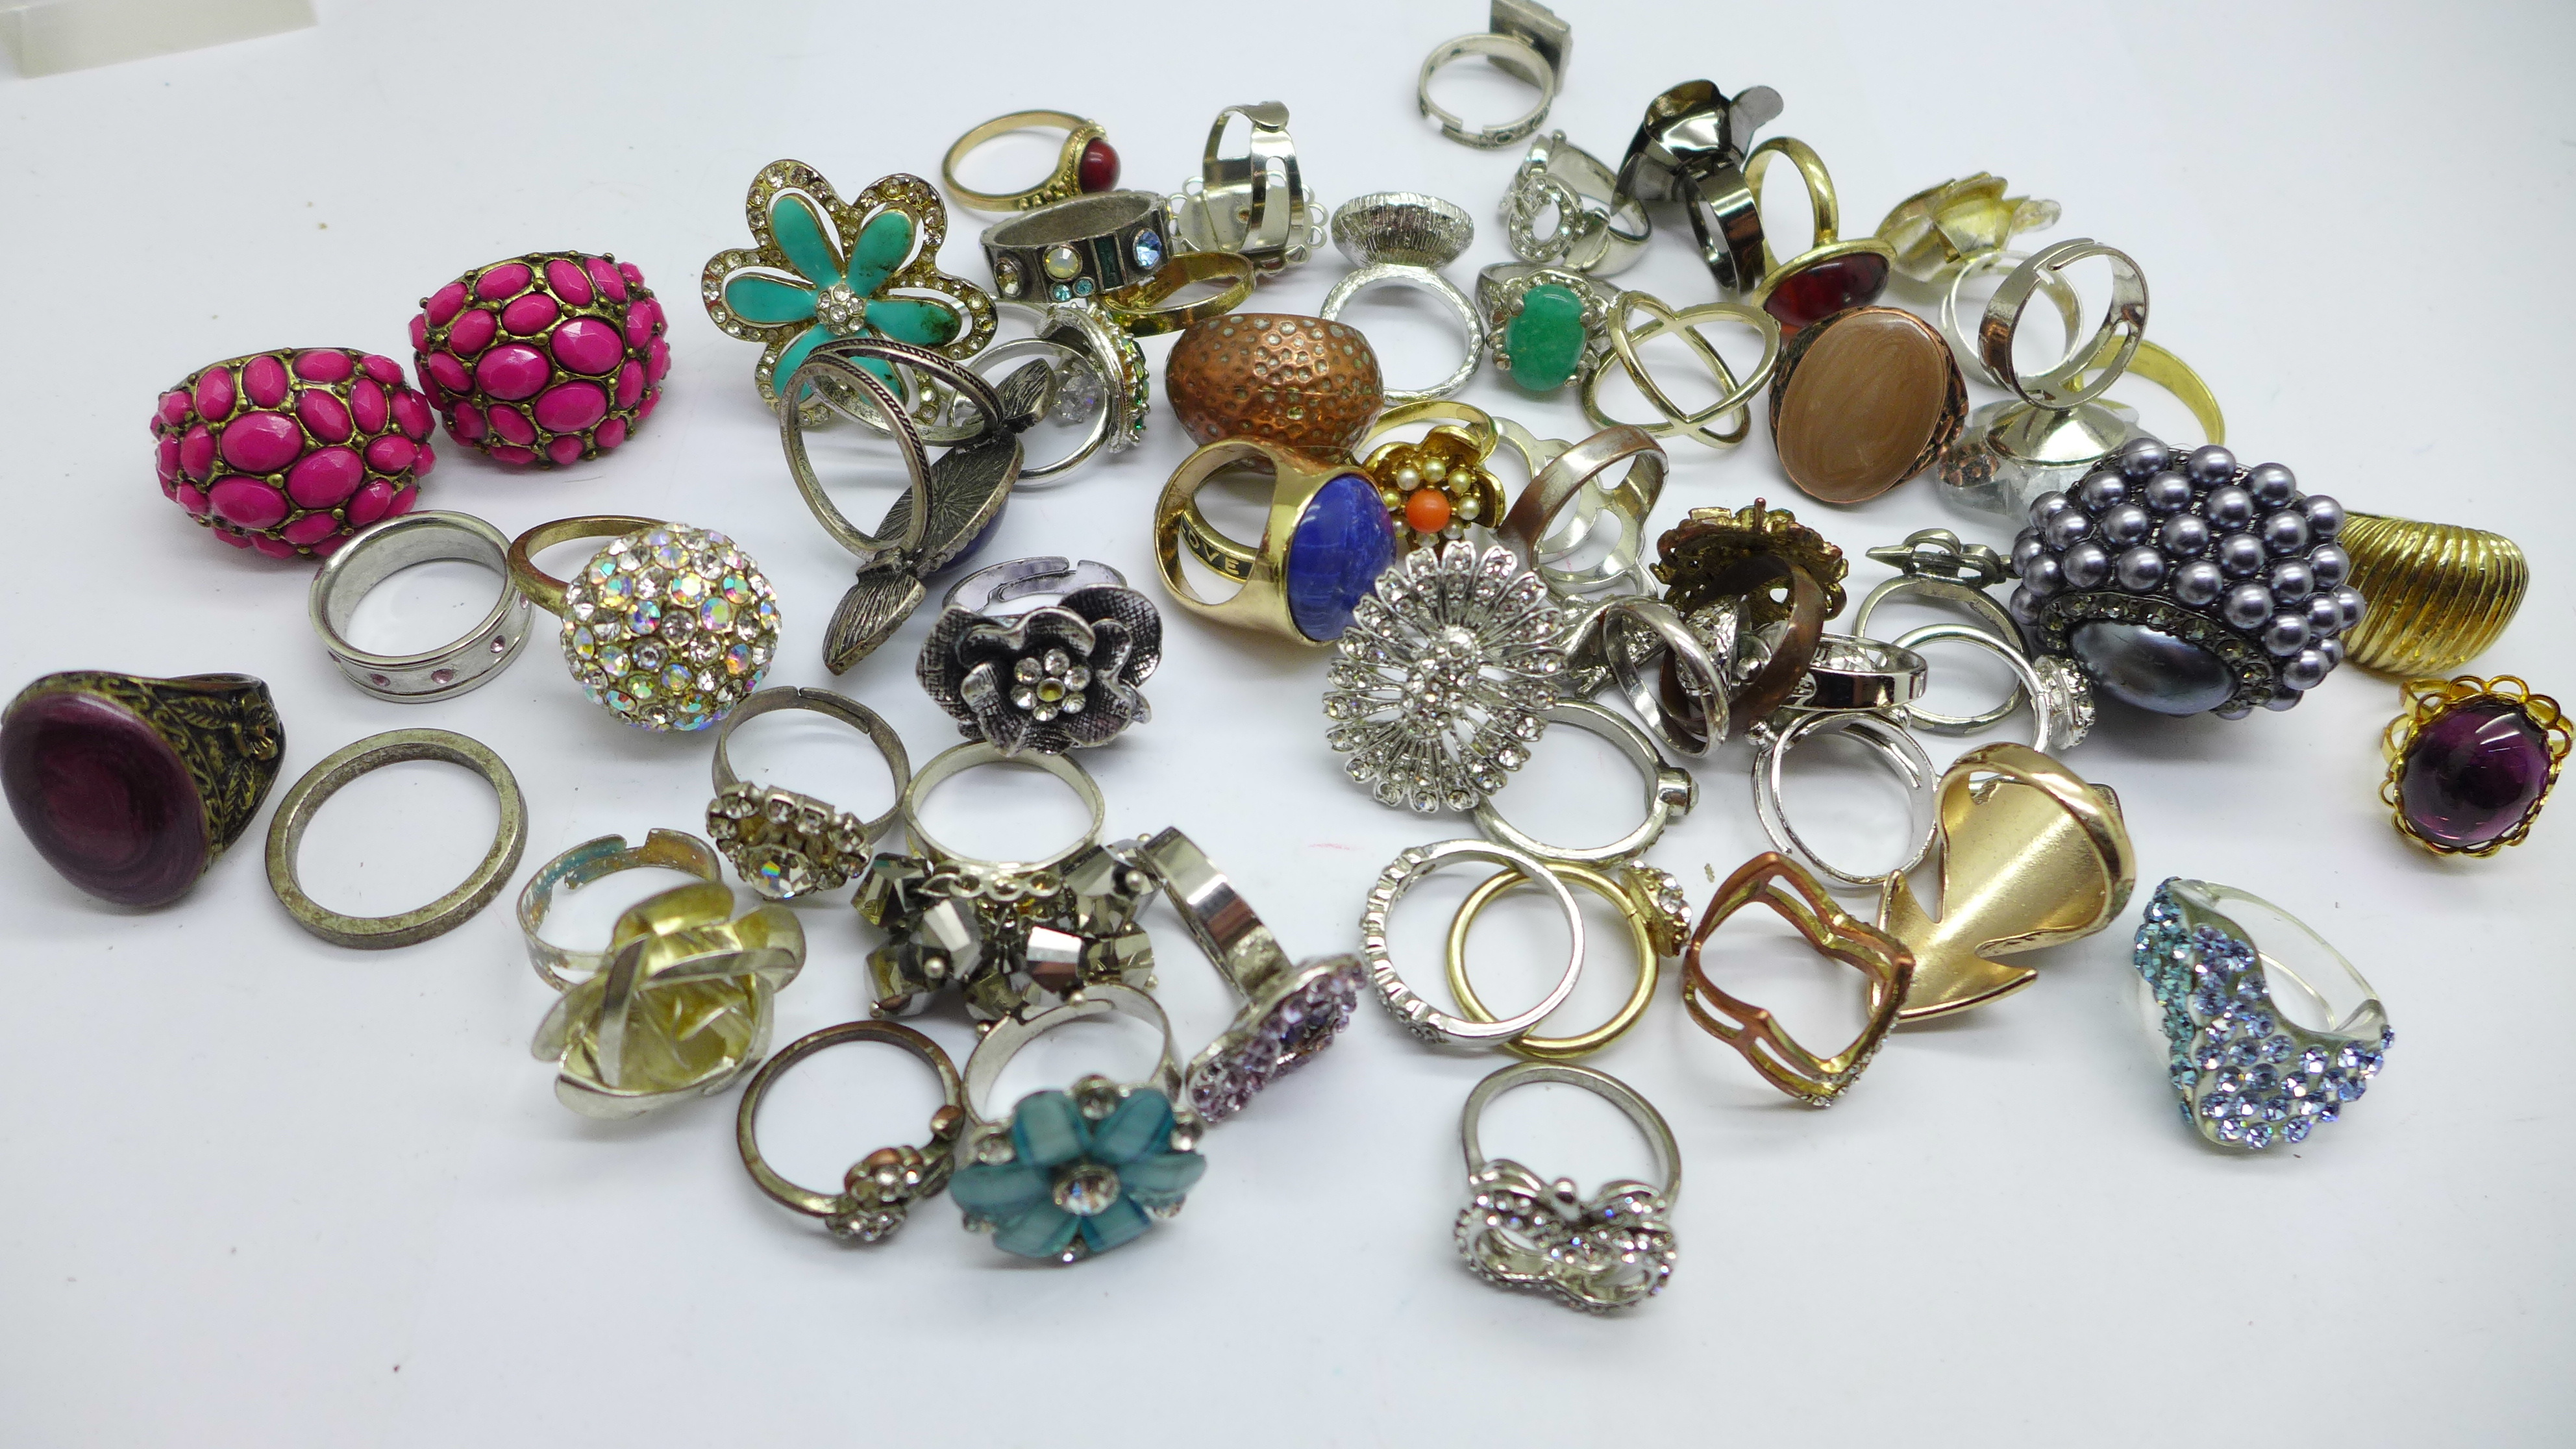 Fifty-five costume rings